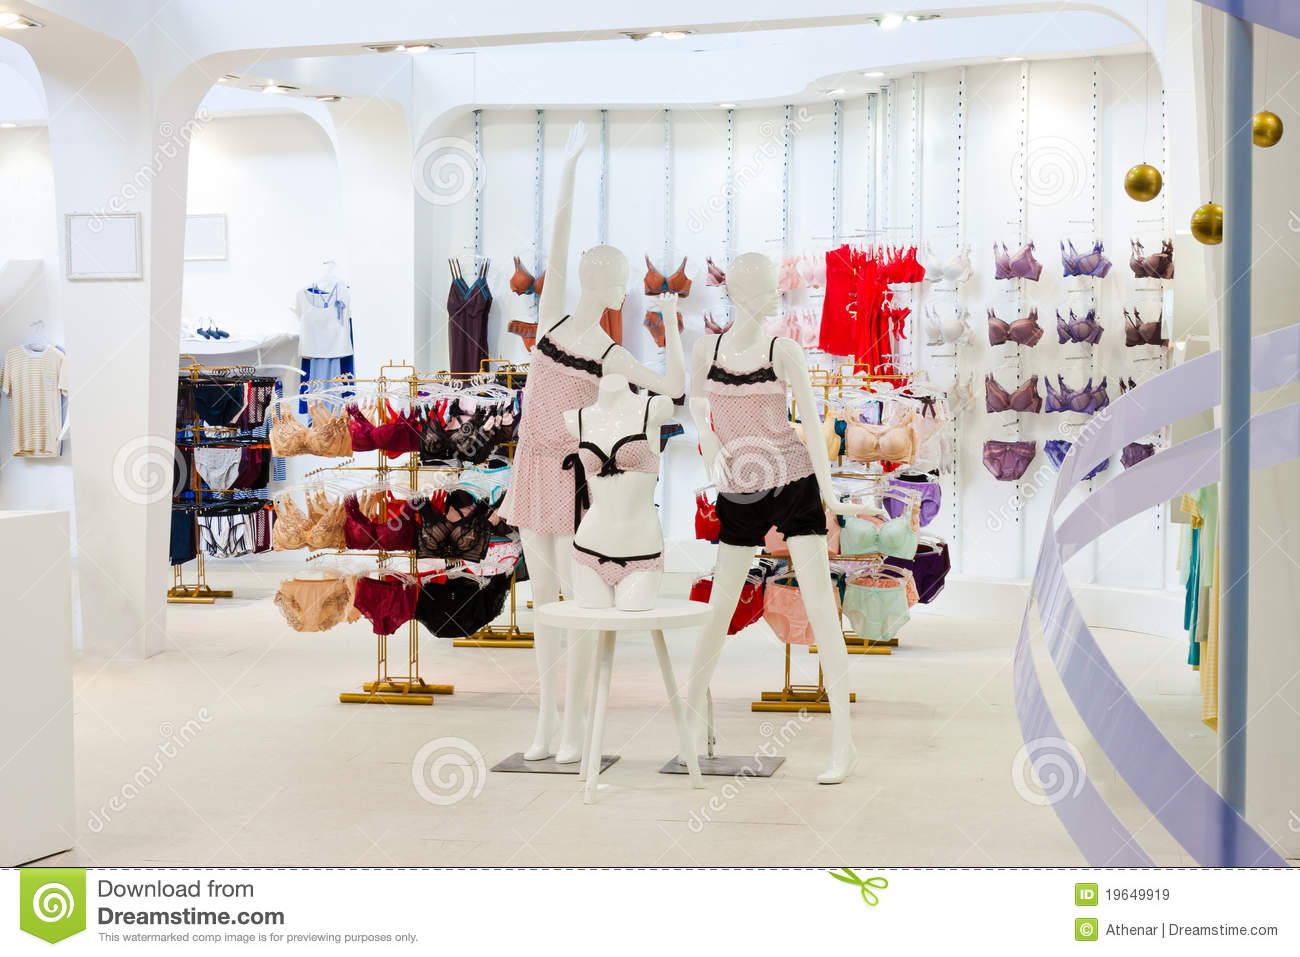 In Marketplace. MOdE women's clothing and accessories store